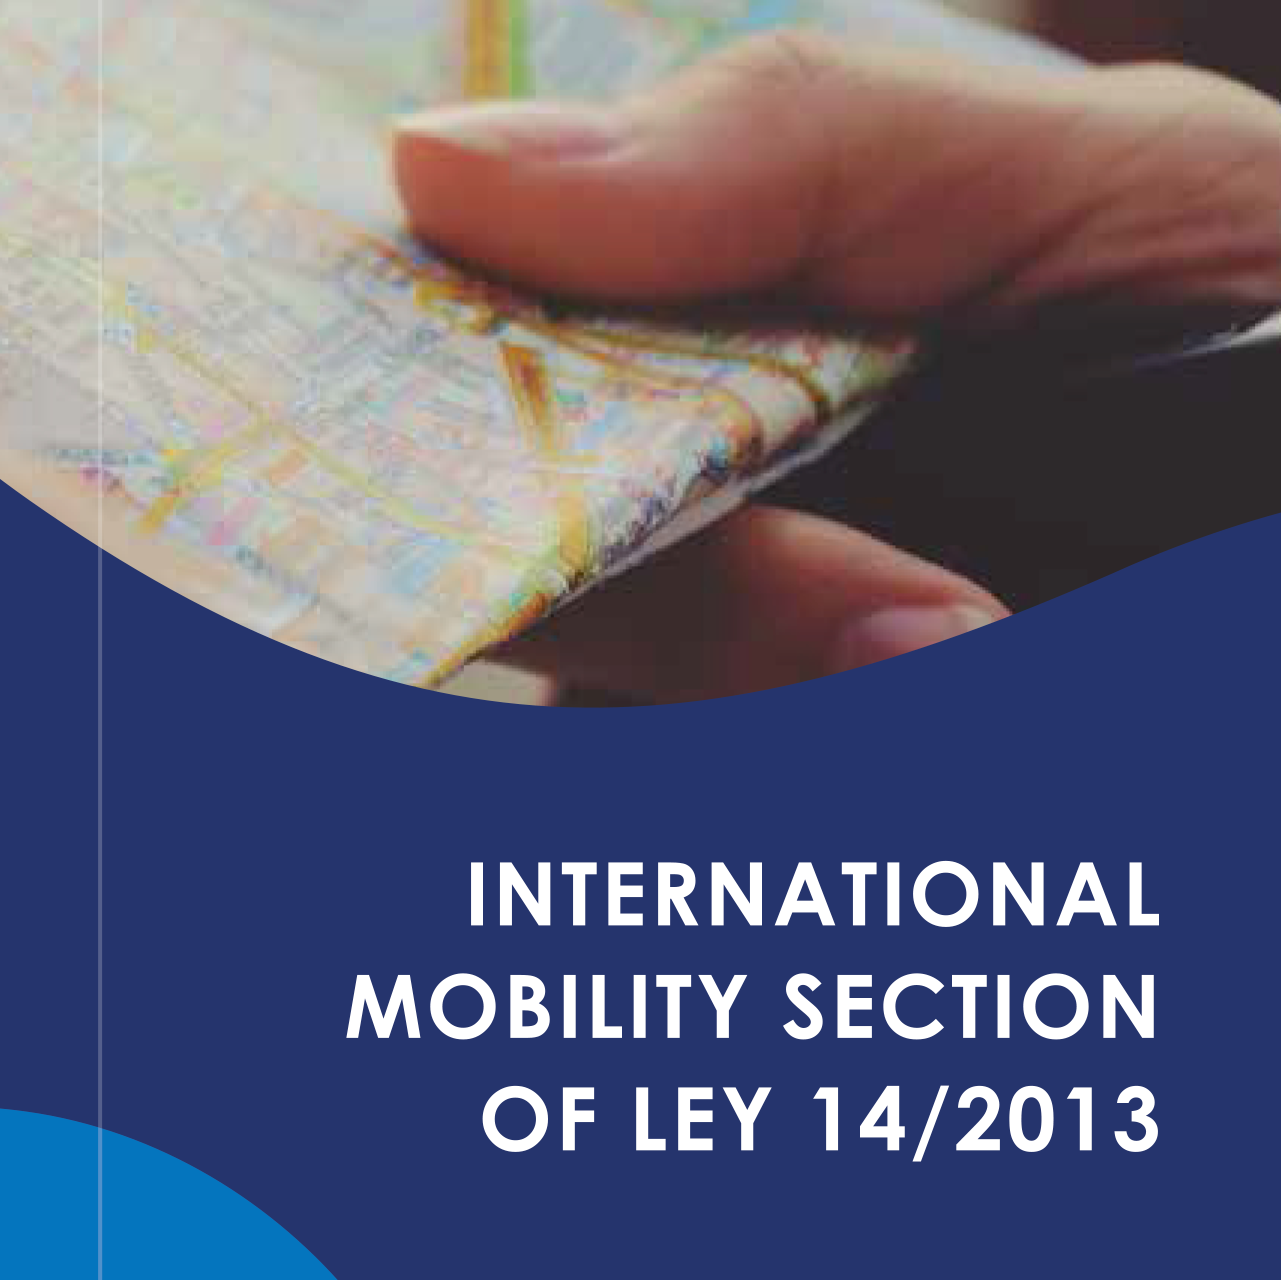 International mobility section of ley 14/2013